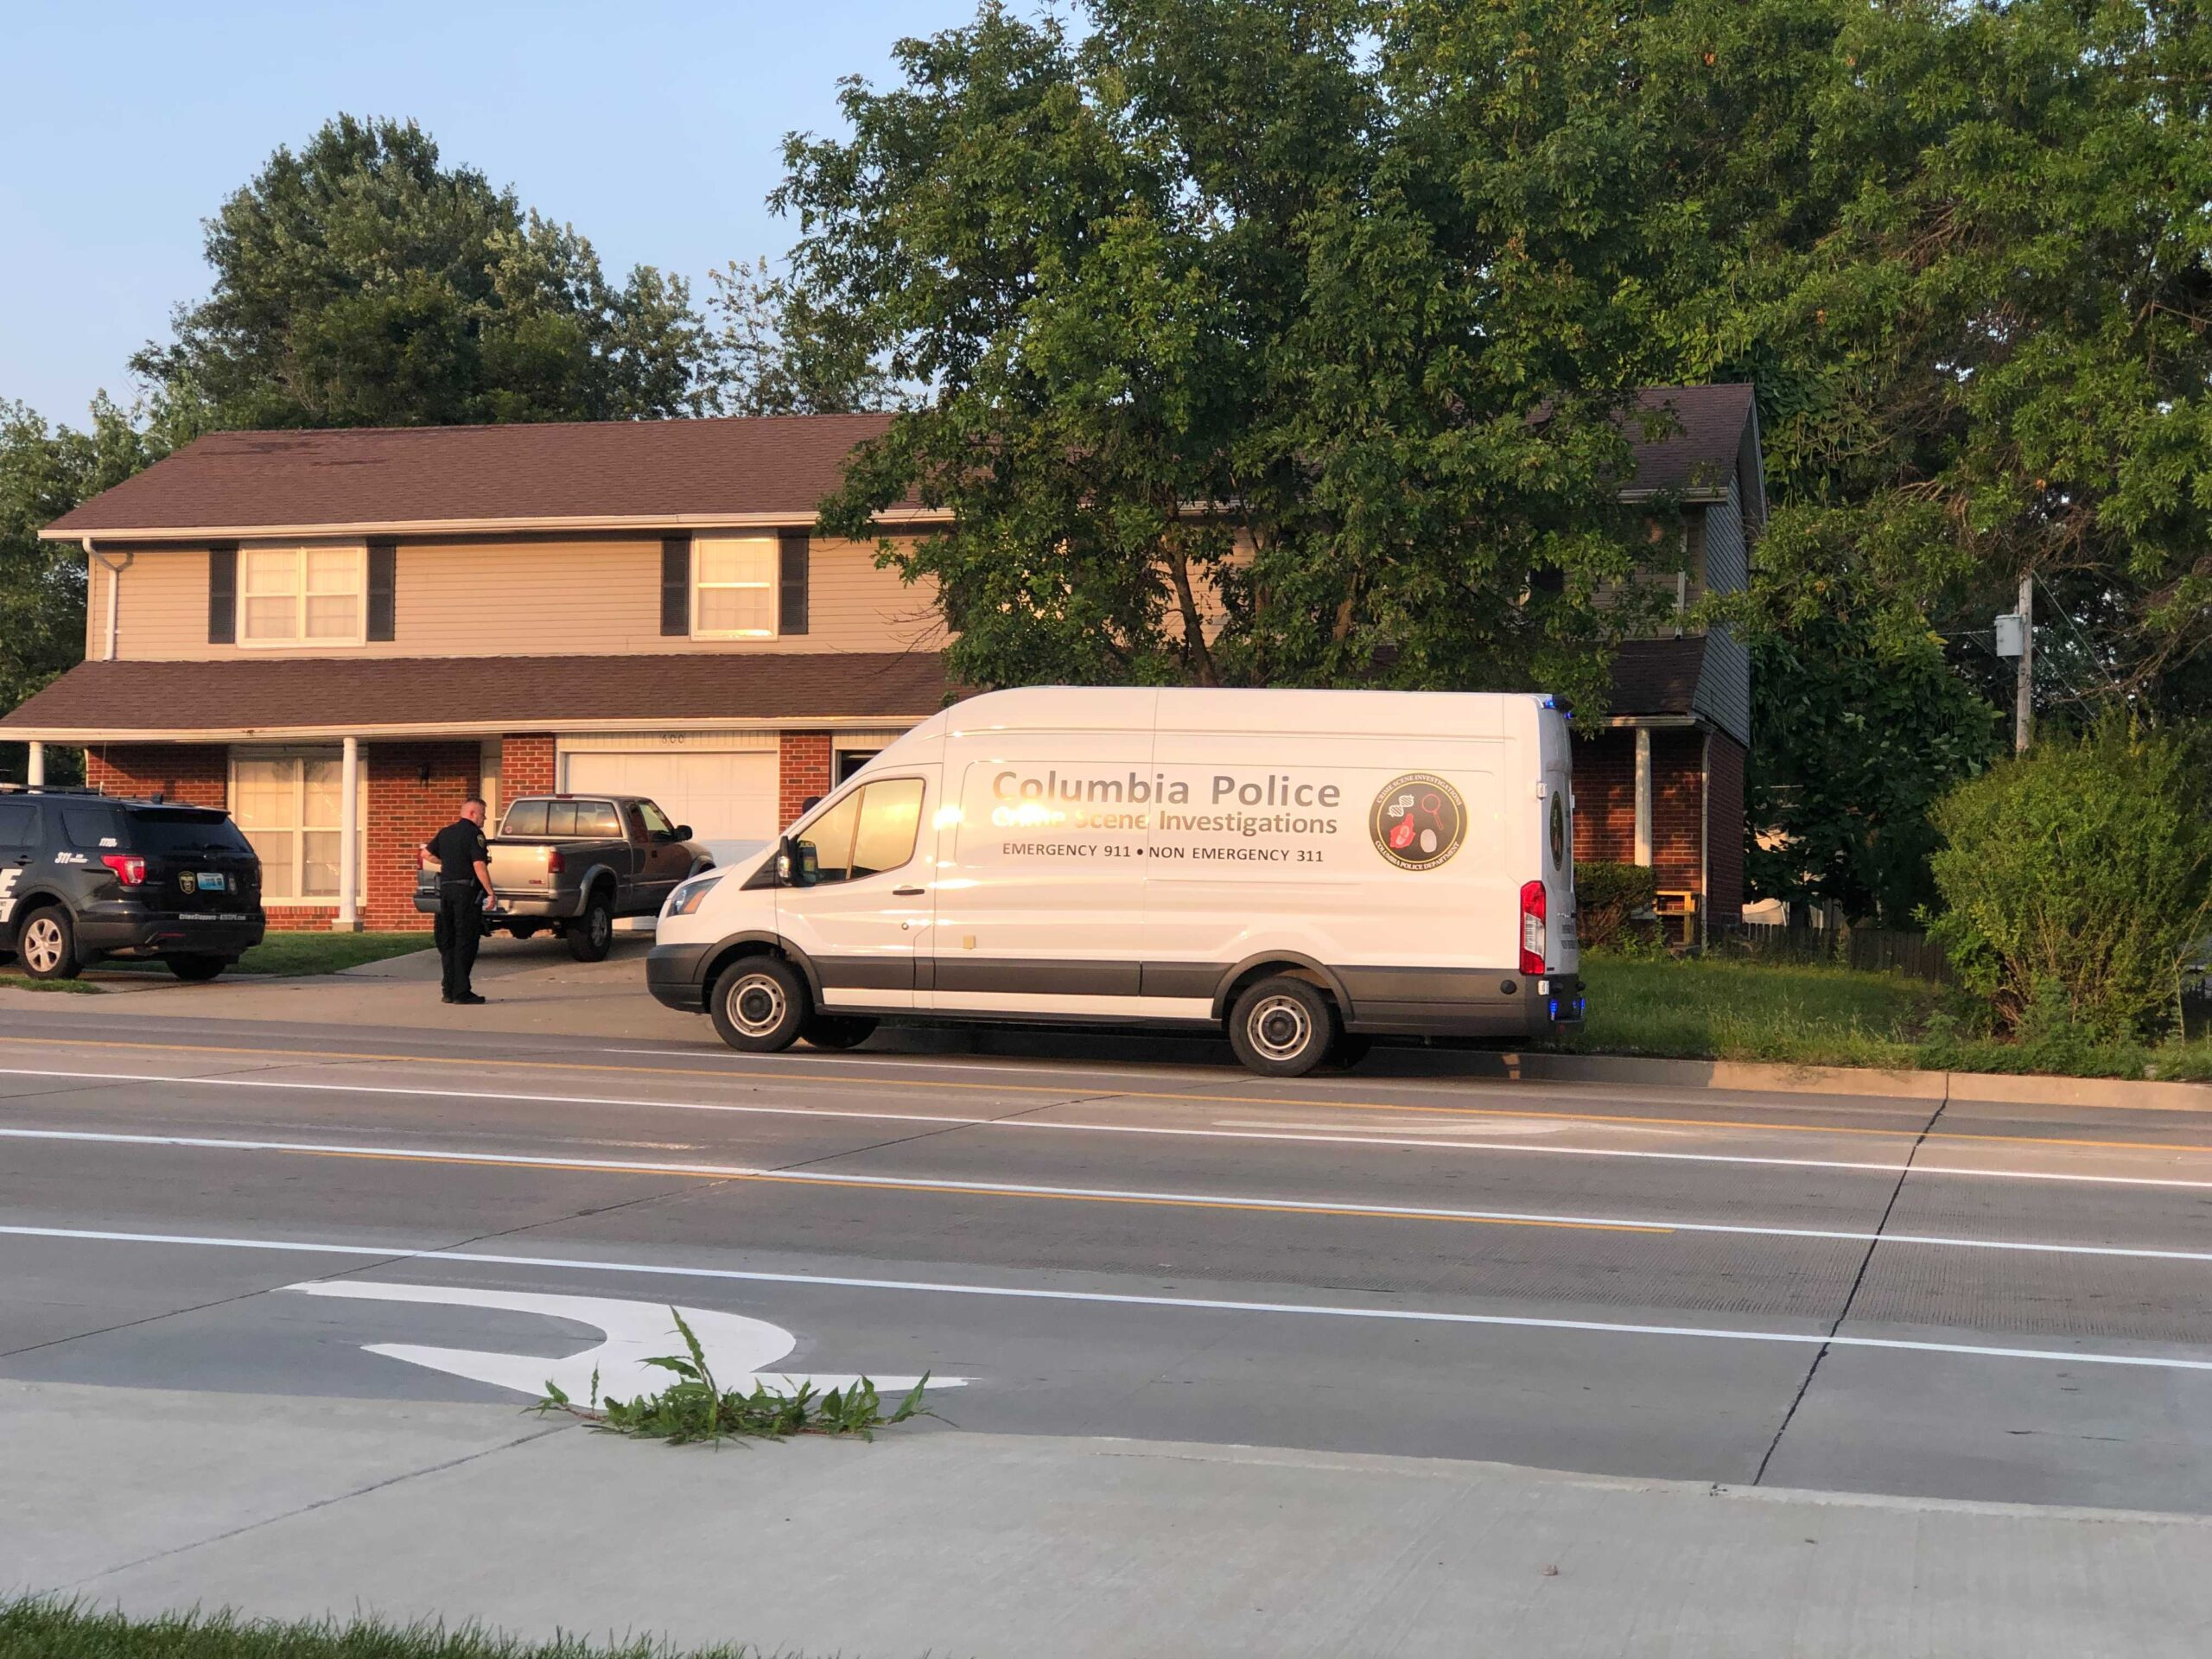 Police respond to a report of shots fired on Scott Boulevard.